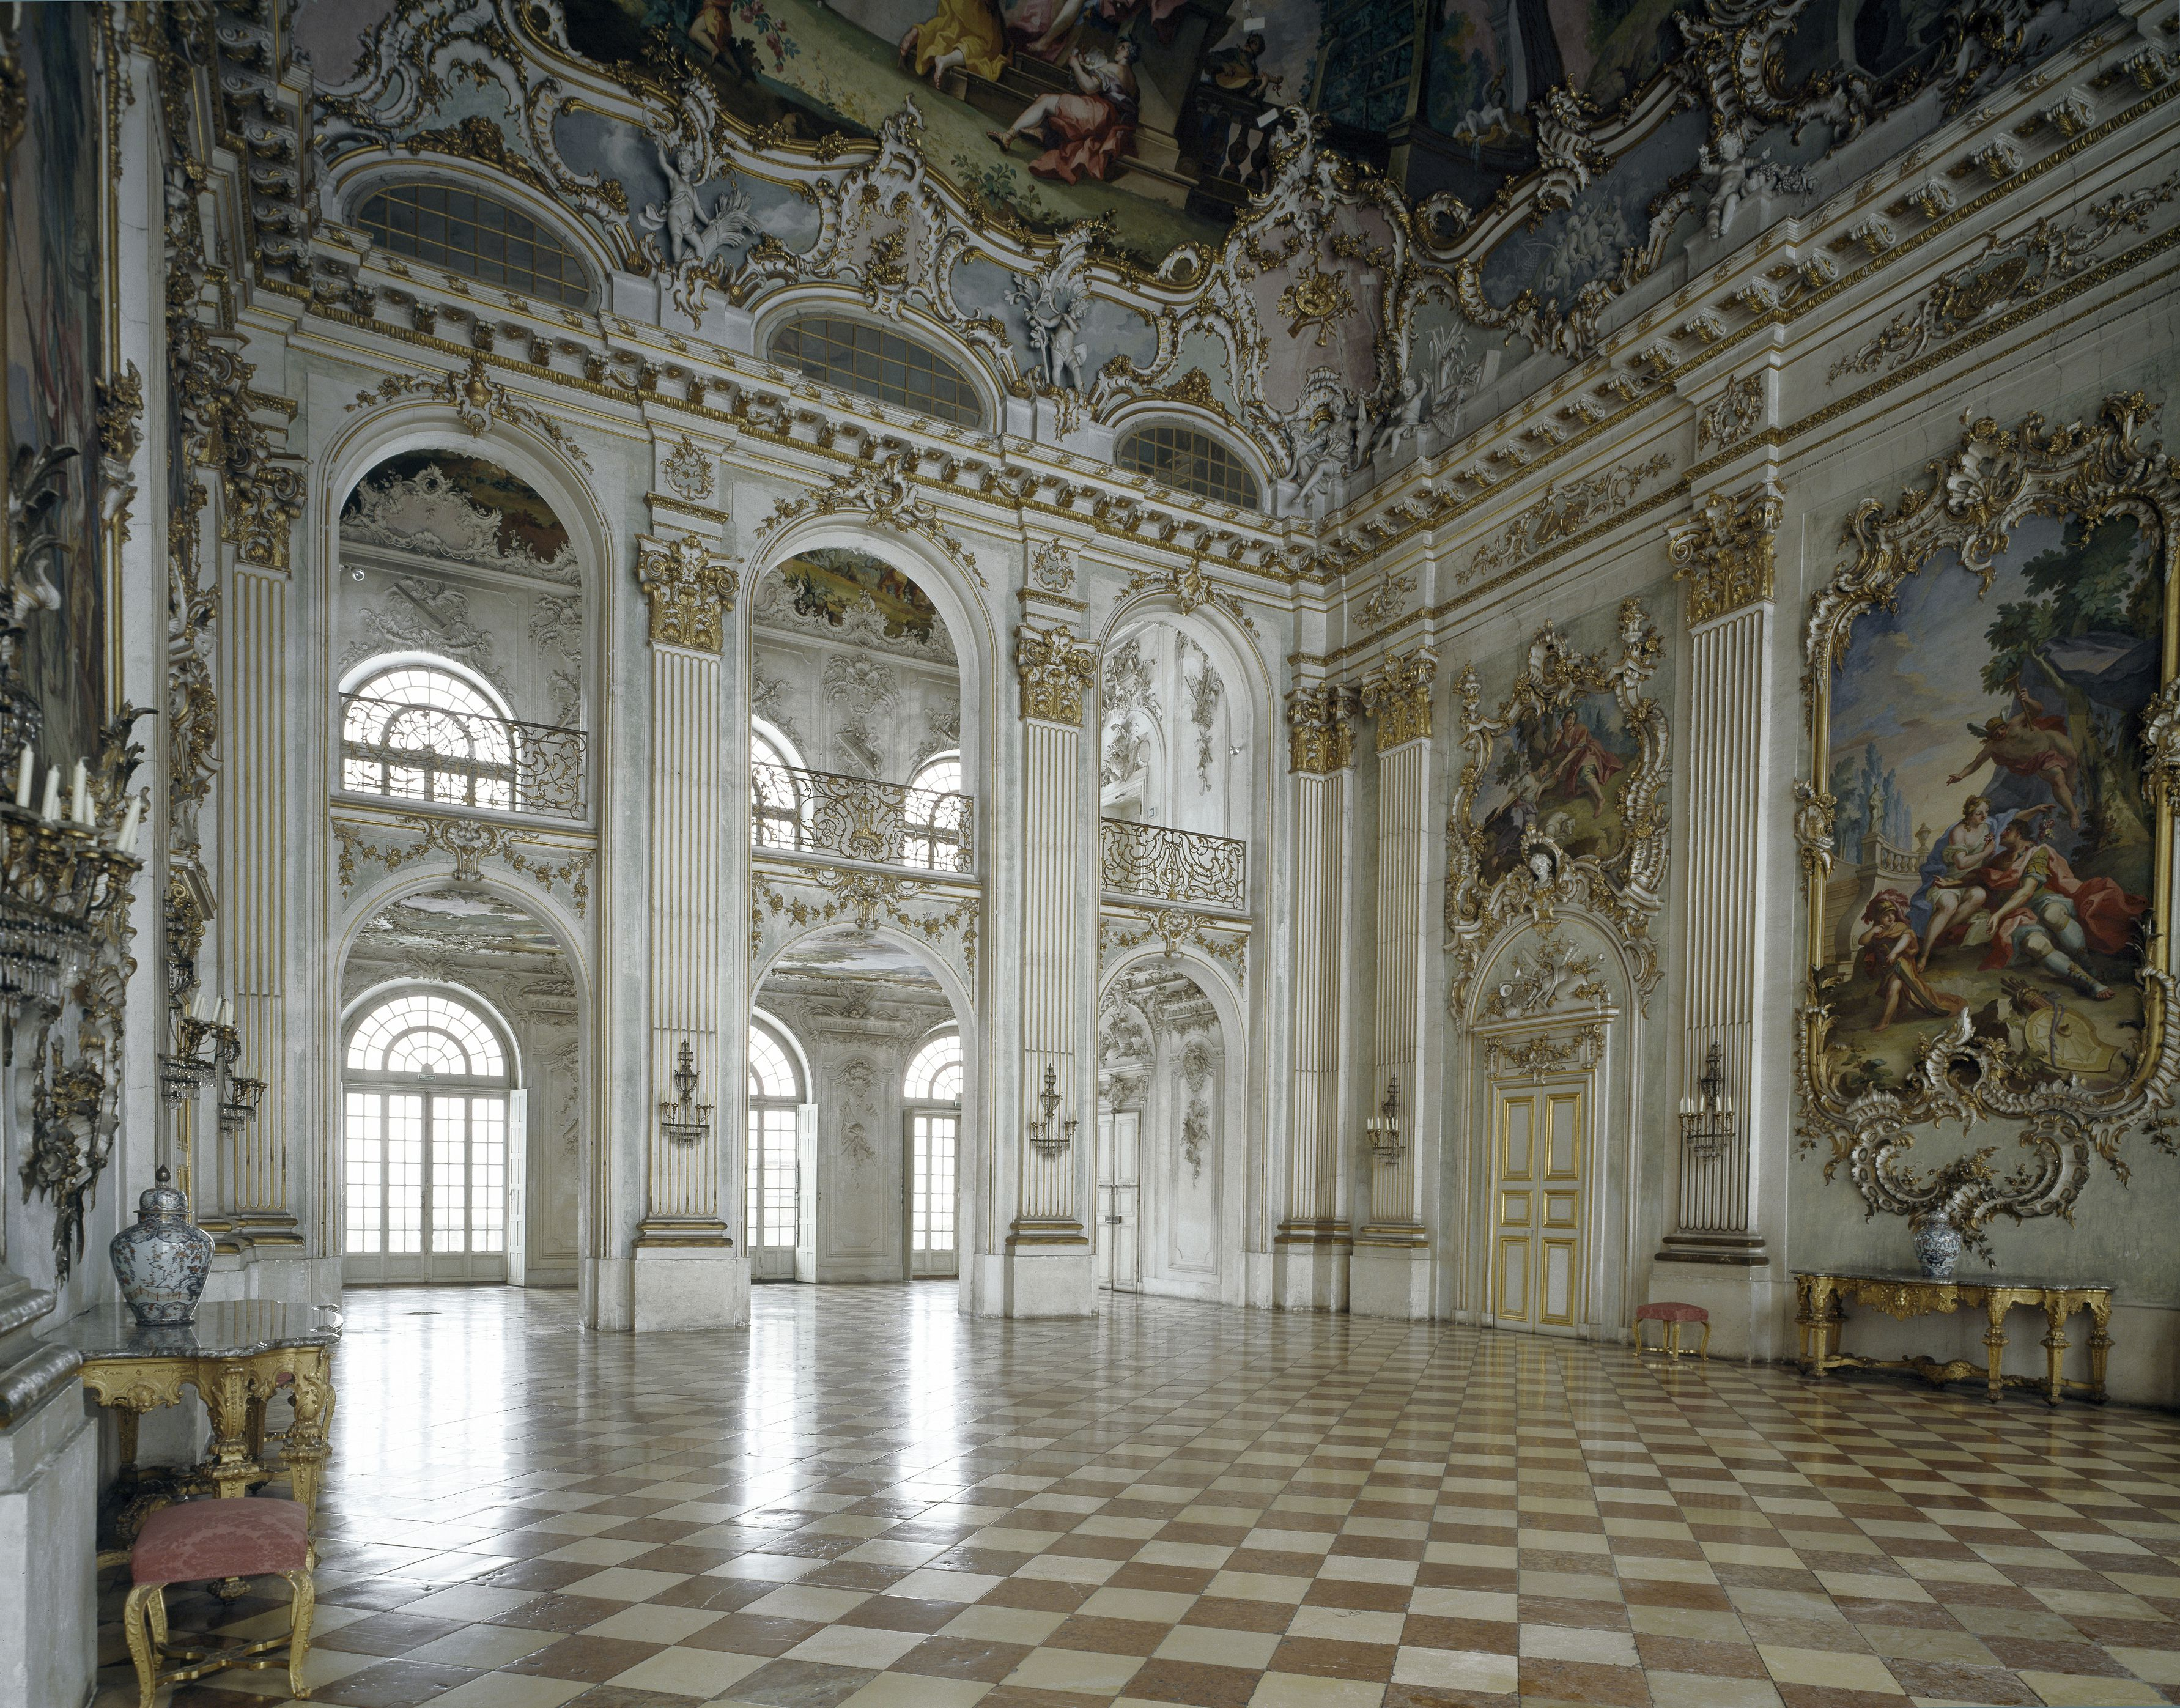 Nymphenburg Palace, 17th century. The Great Hall. Baroque style. Munich, Germany